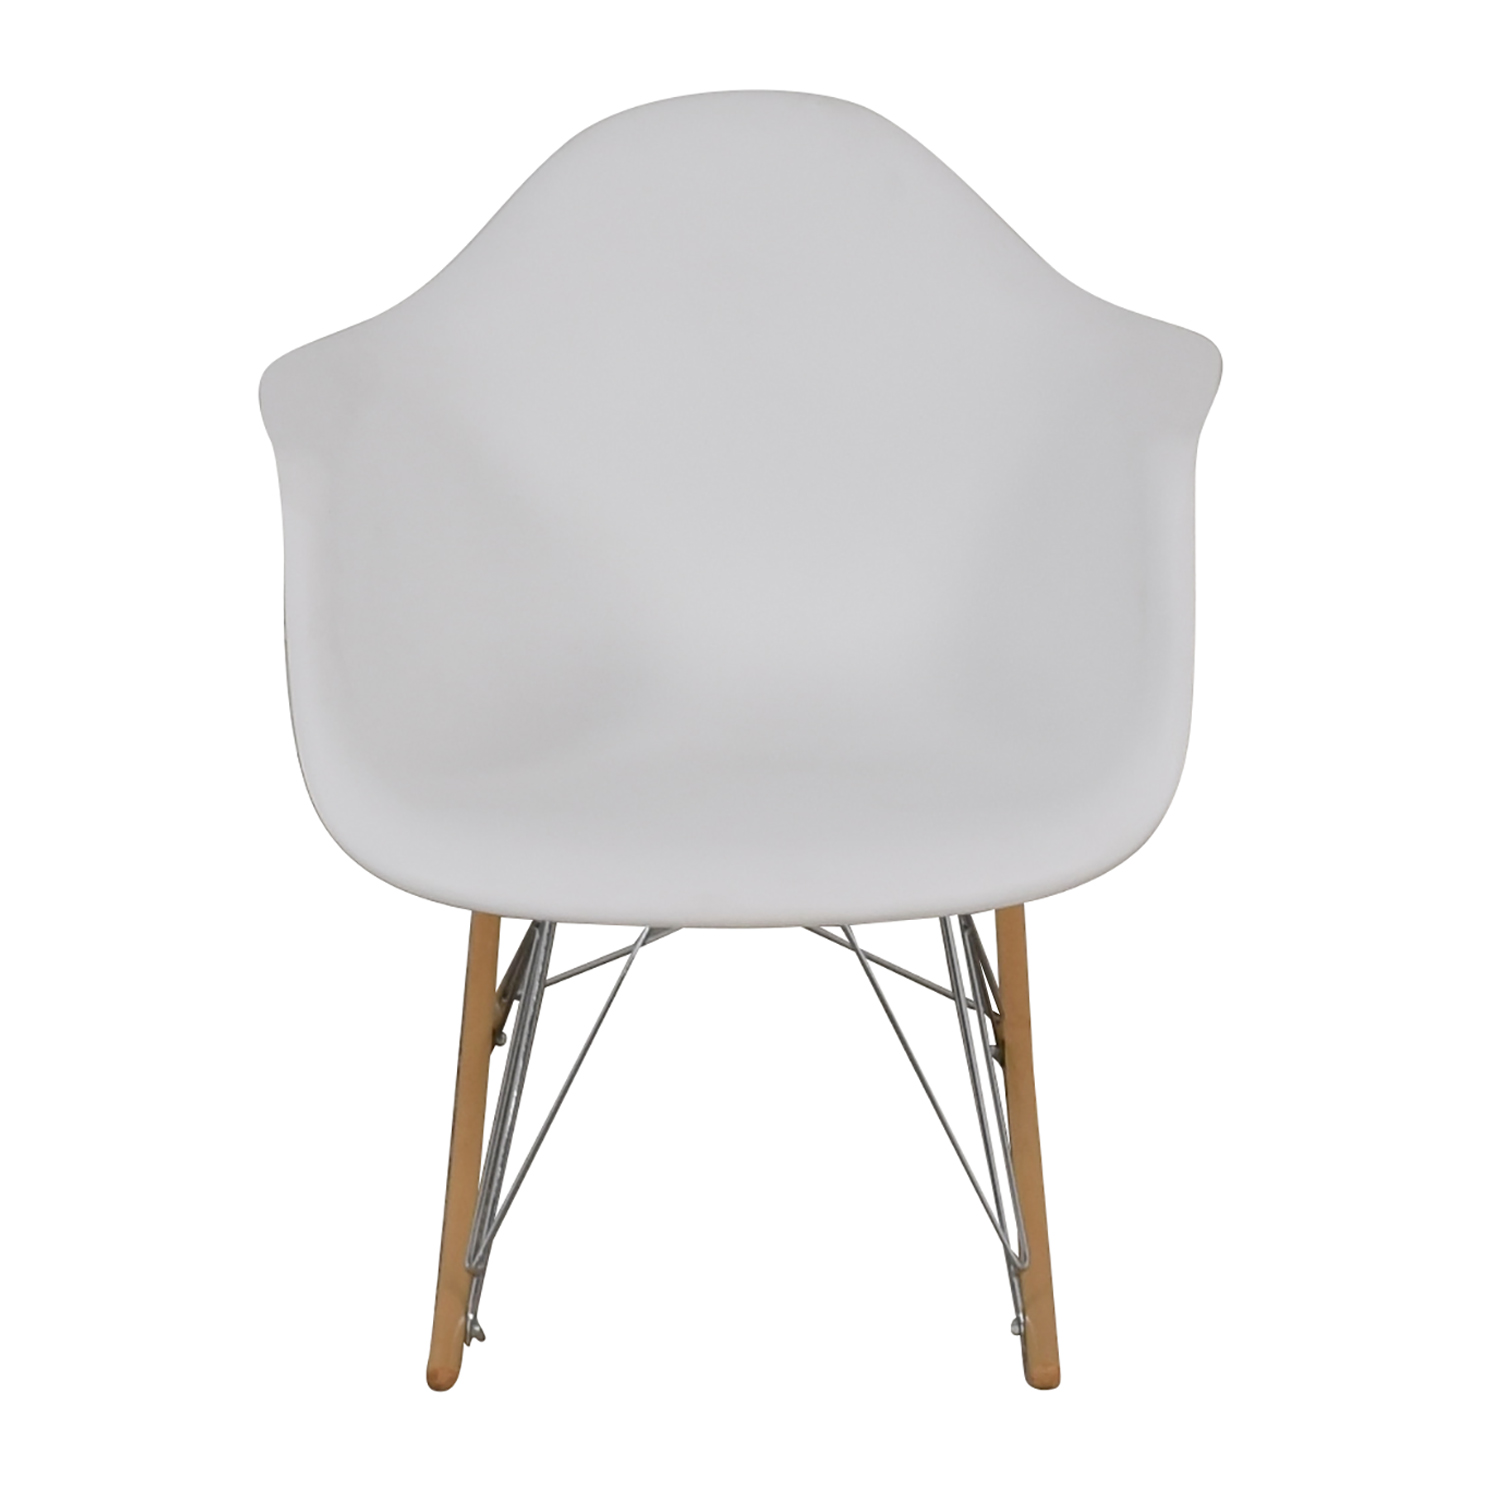 Strange 47 Off Molded Plastic White Rocking Chair Chairs Unemploymentrelief Wooden Chair Designs For Living Room Unemploymentrelieforg